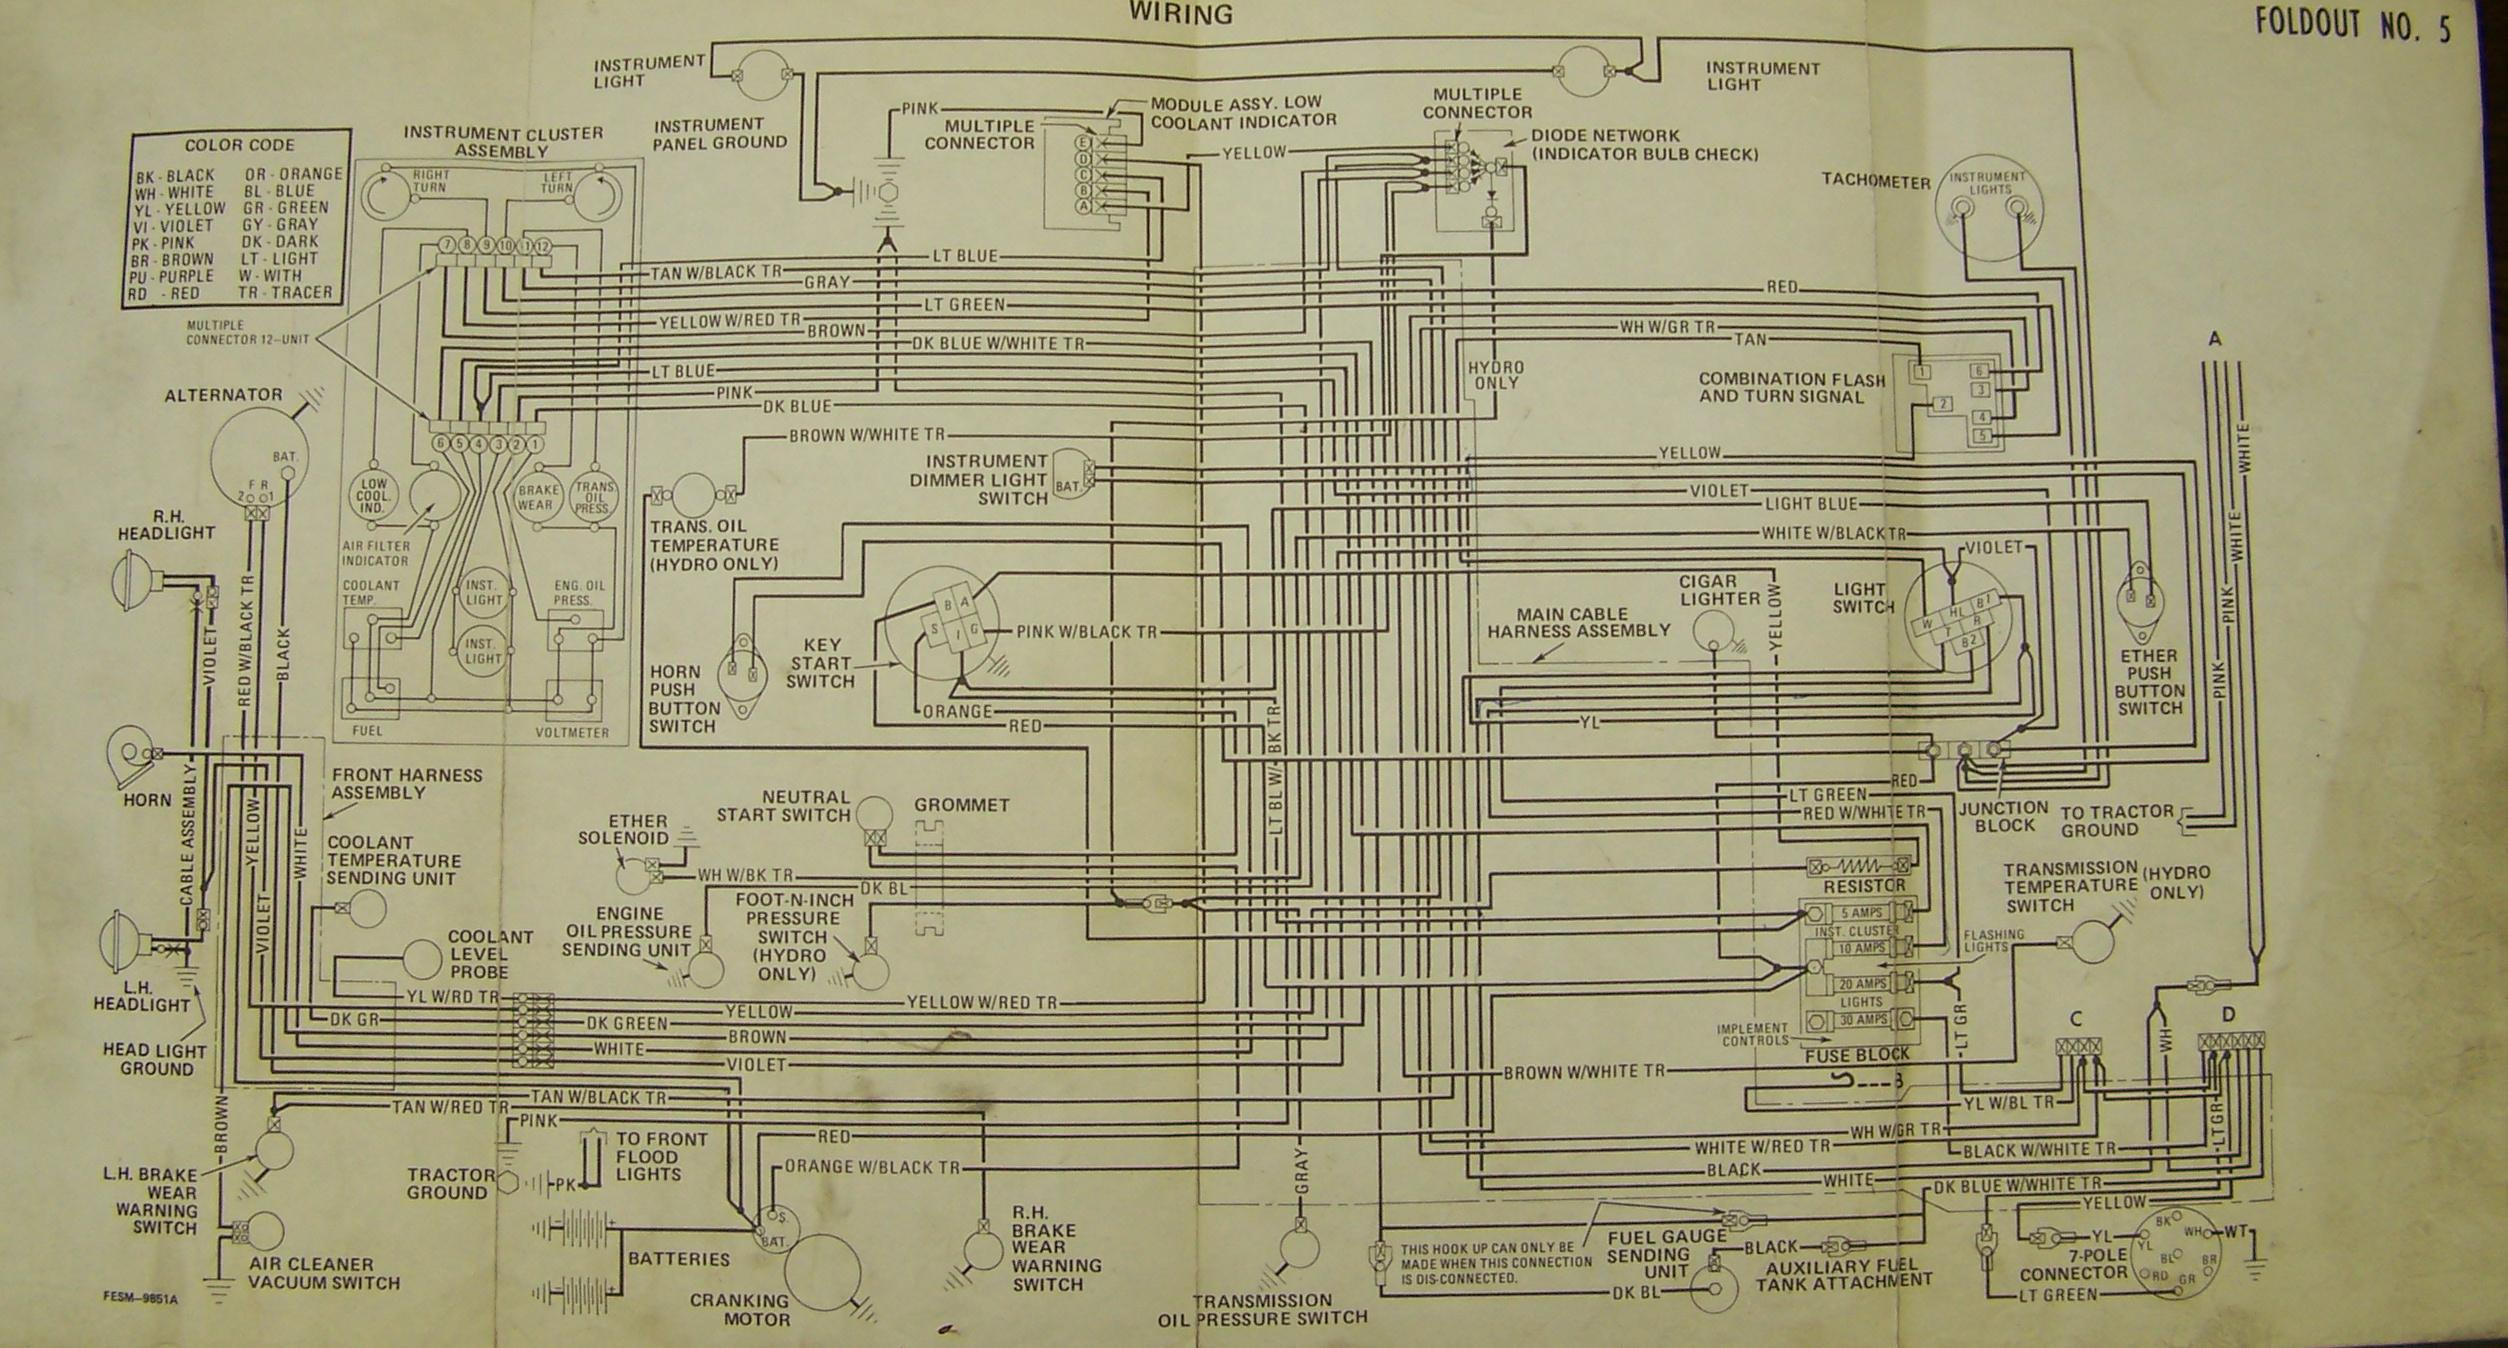 86series5 international motor diagrams ge electric motor wiring diagram 856 international wiring harness at mifinder.co